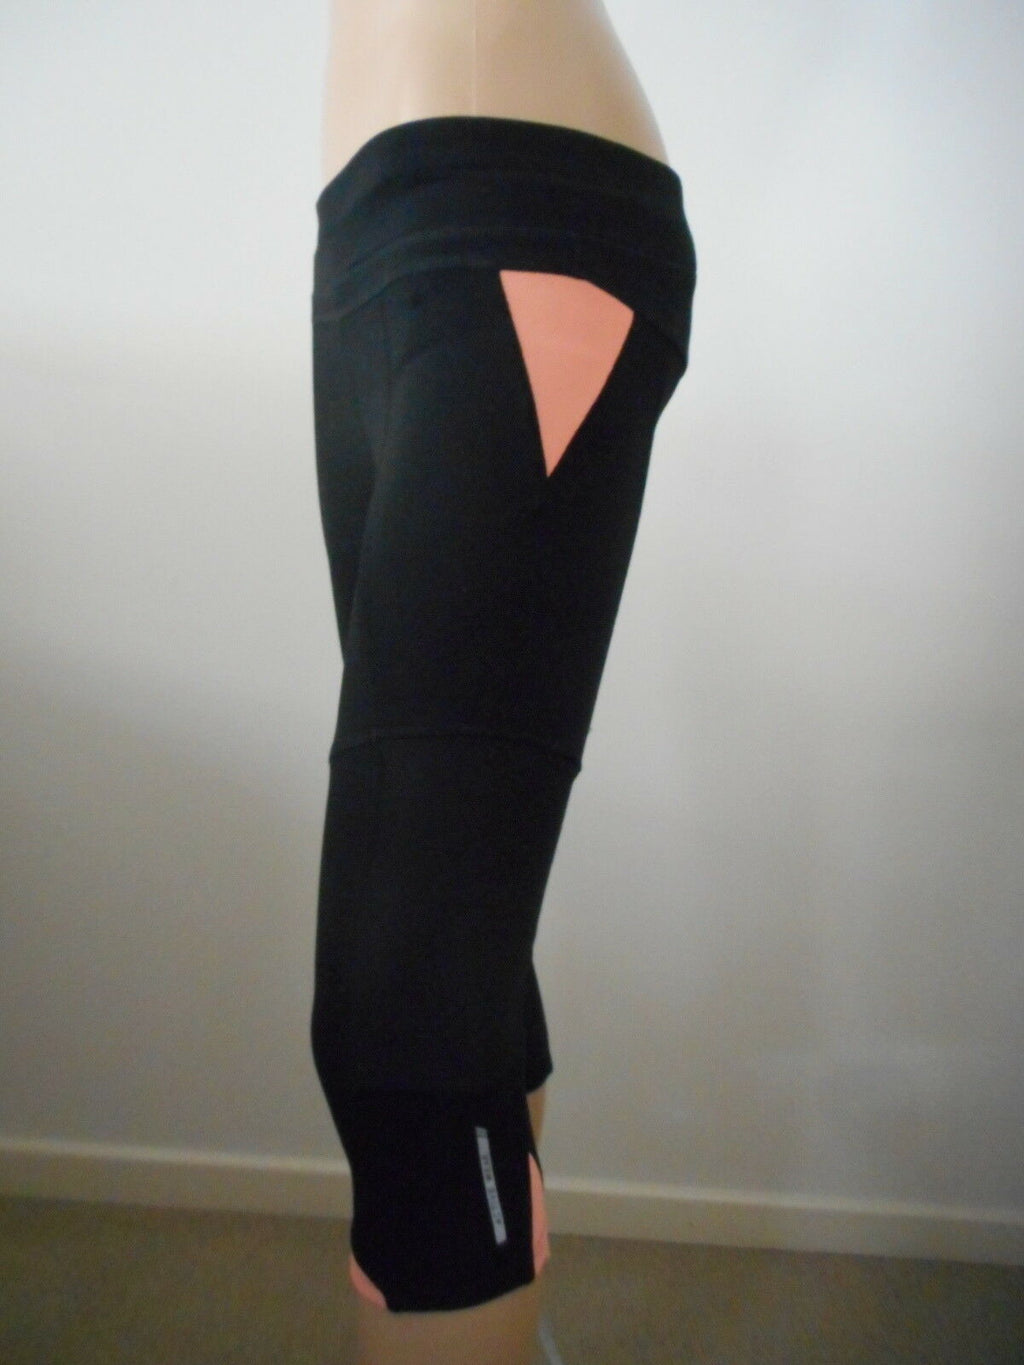 Women's 3/4 length fitness tights (black with orange detail)